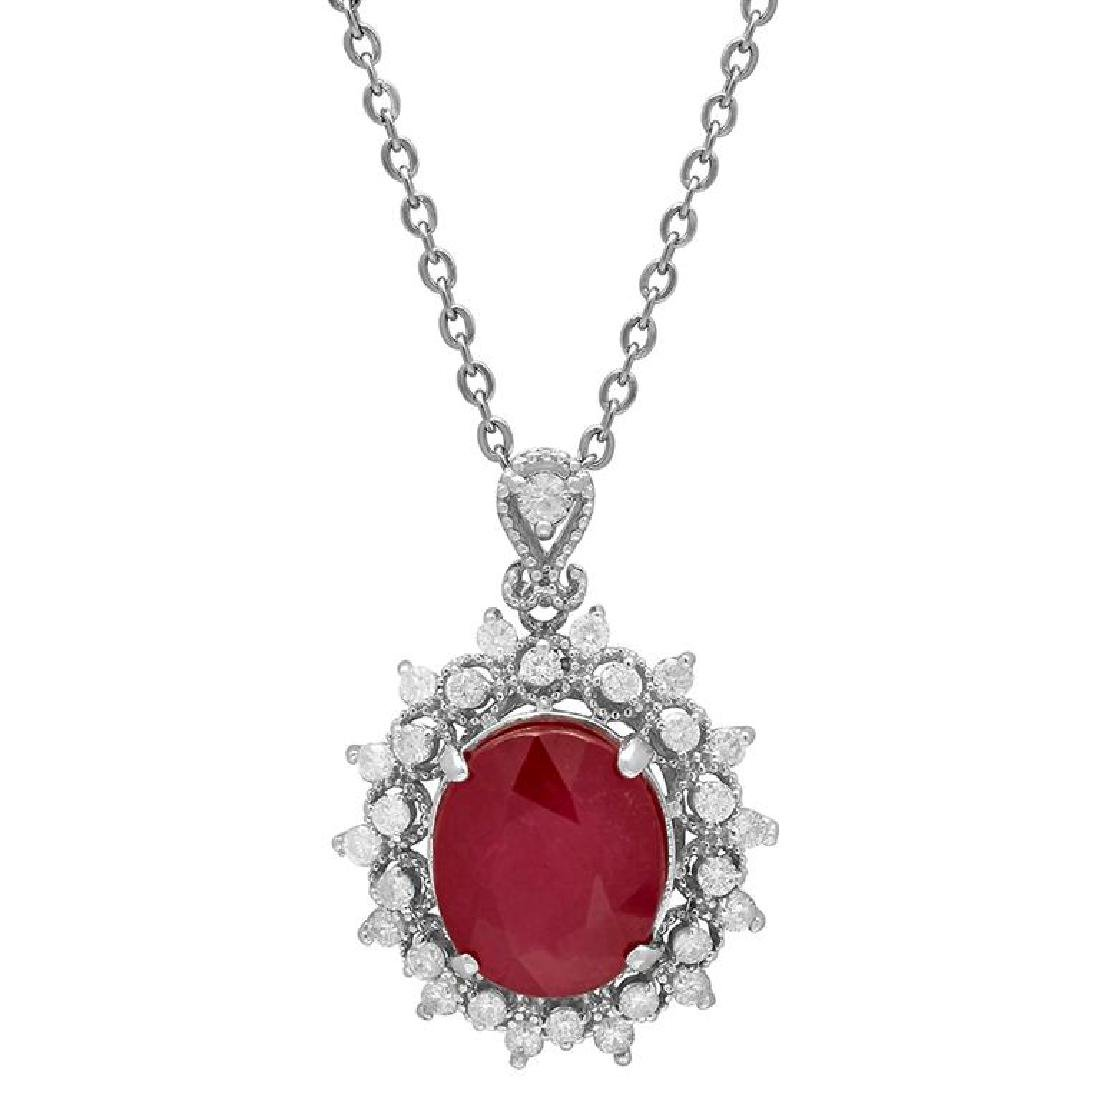 14k White Gold 7.45ct Ruby 0.65ct Diamond Pendant